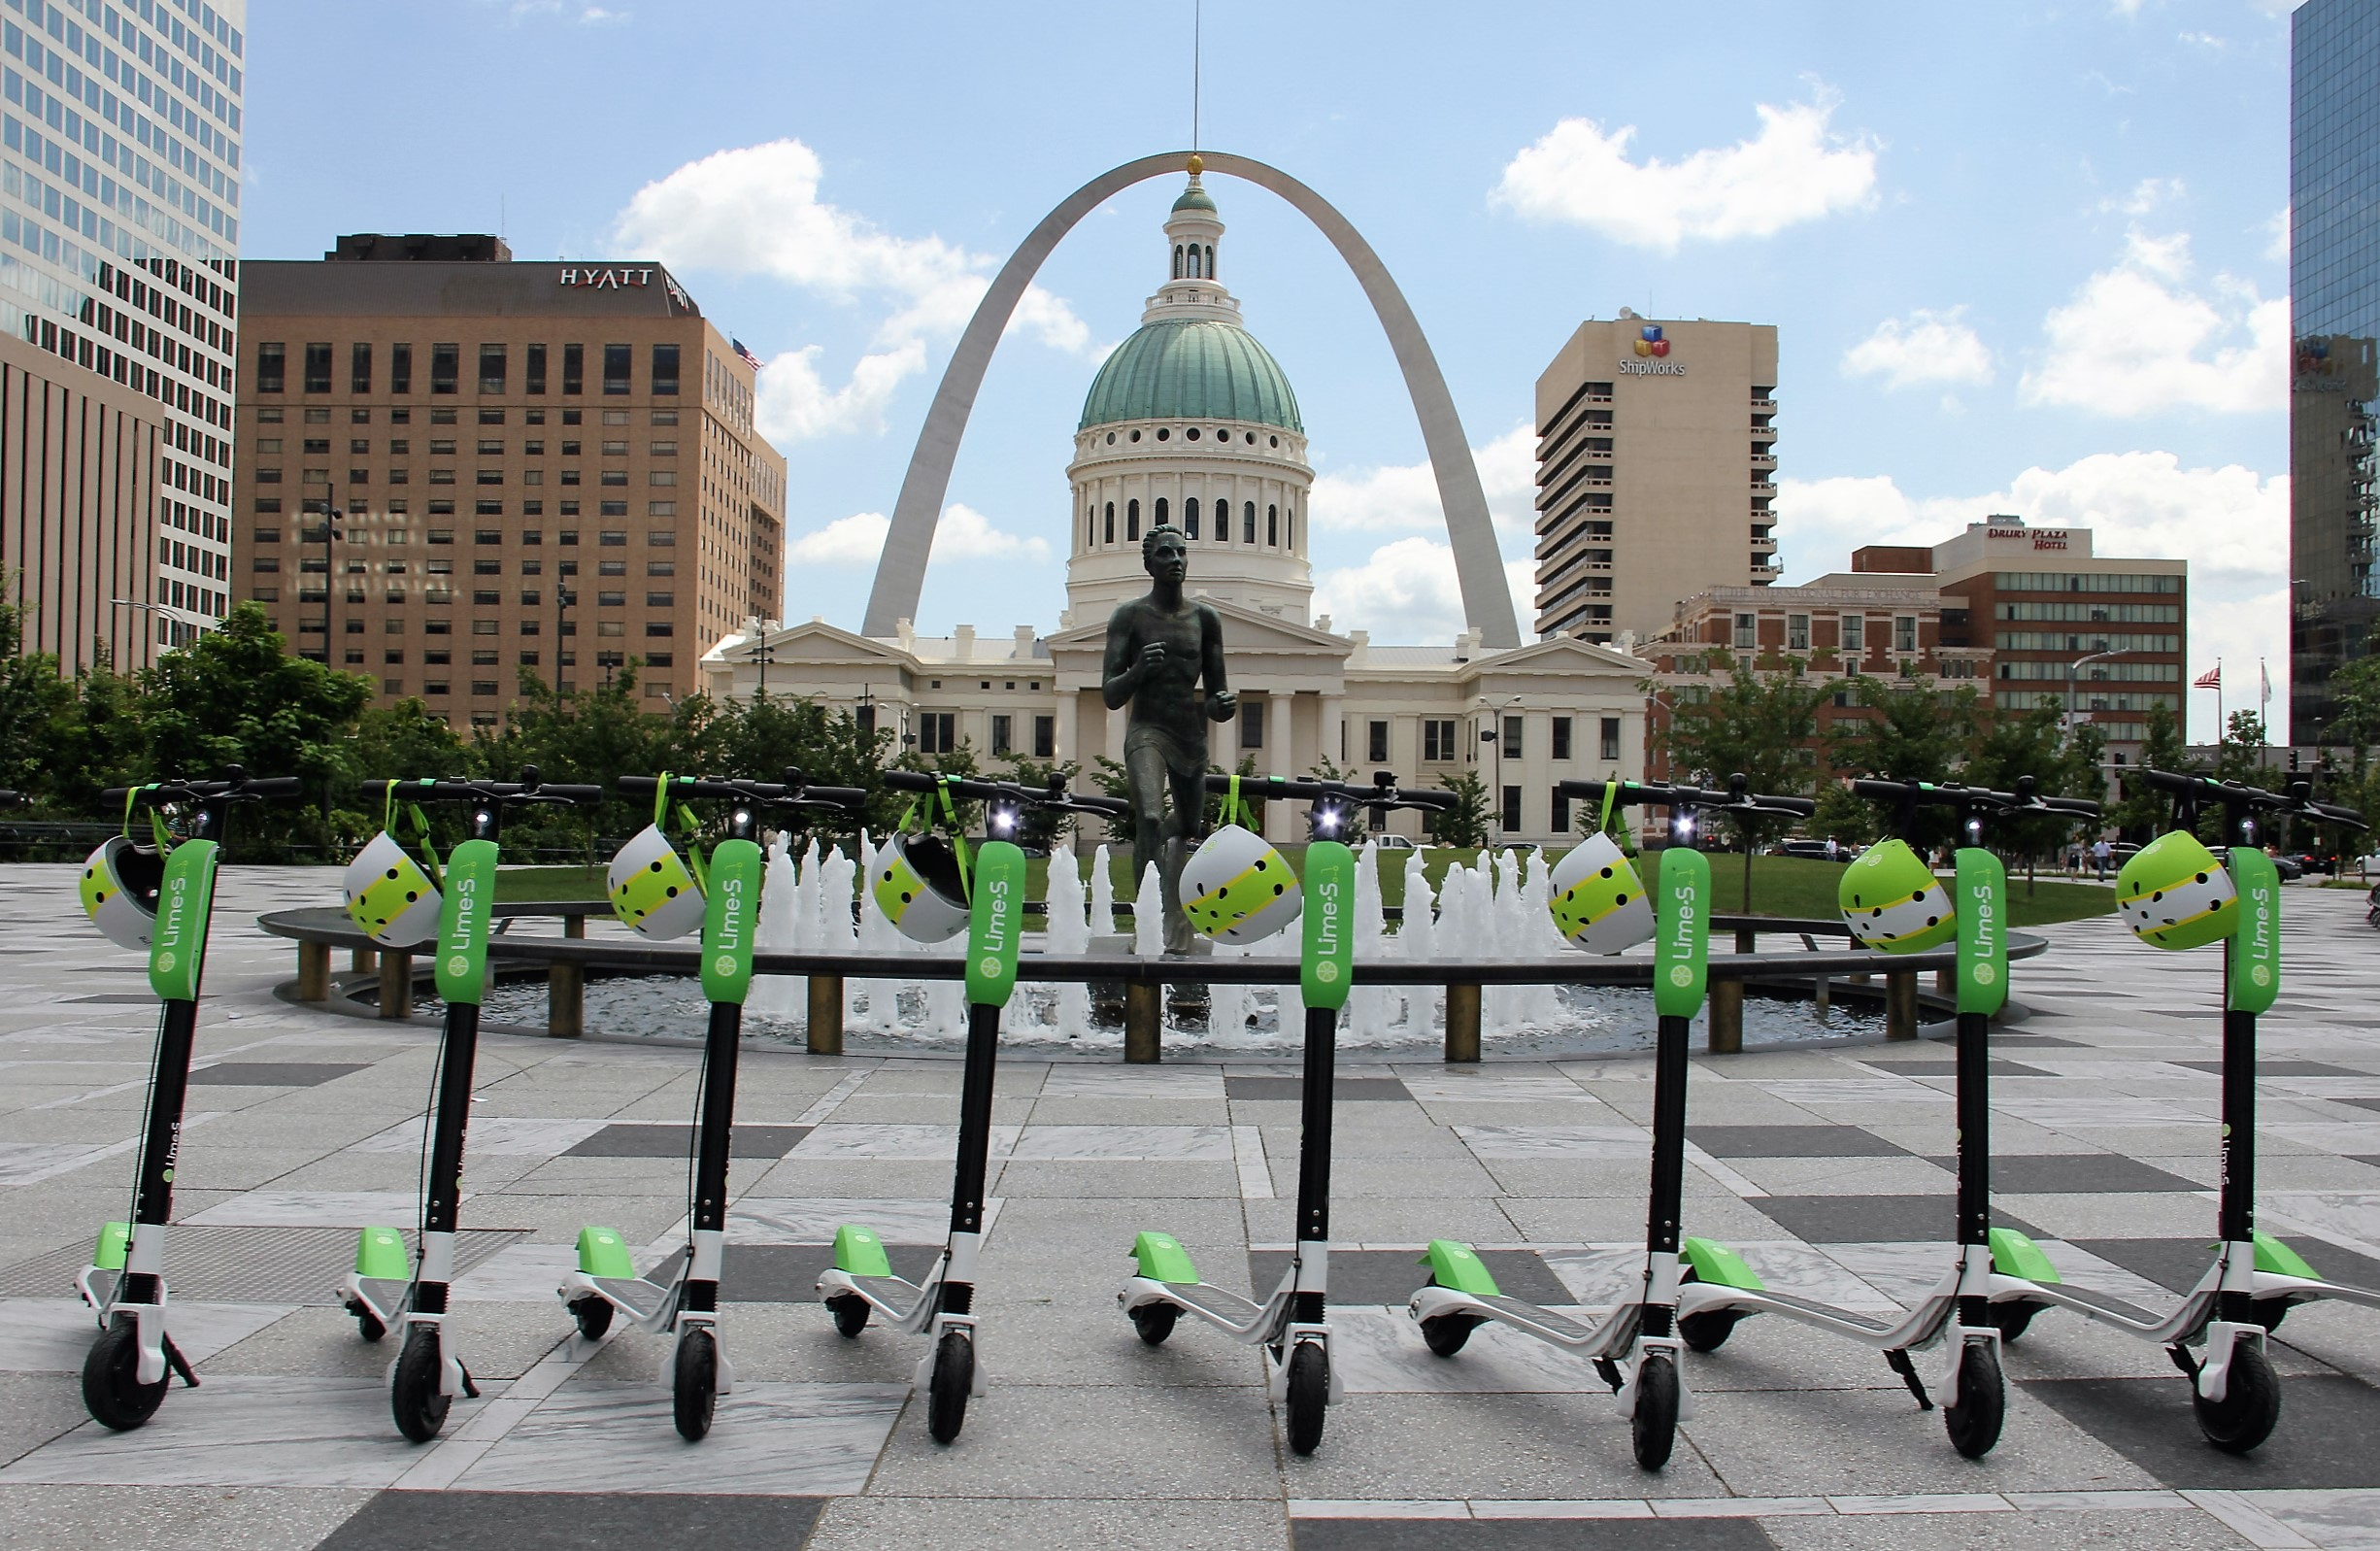 Lime Launches Electric Dock Free Scooter Service